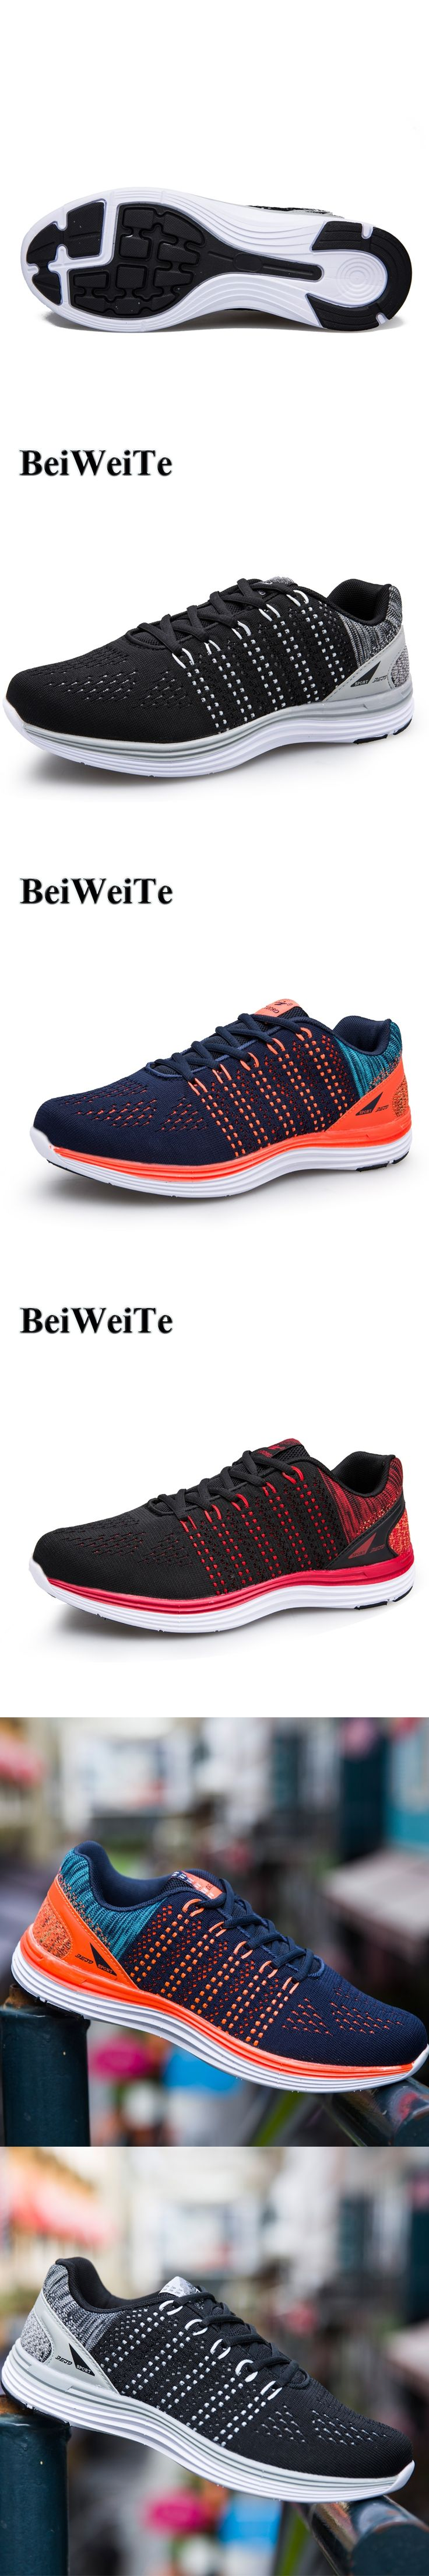 BeiWeiTe 40-48 Big Size Mens Running Shoes Summer Light Sports Shoes For Men Anti-Skid Jogging Trainer Shoes New Brand Shoes